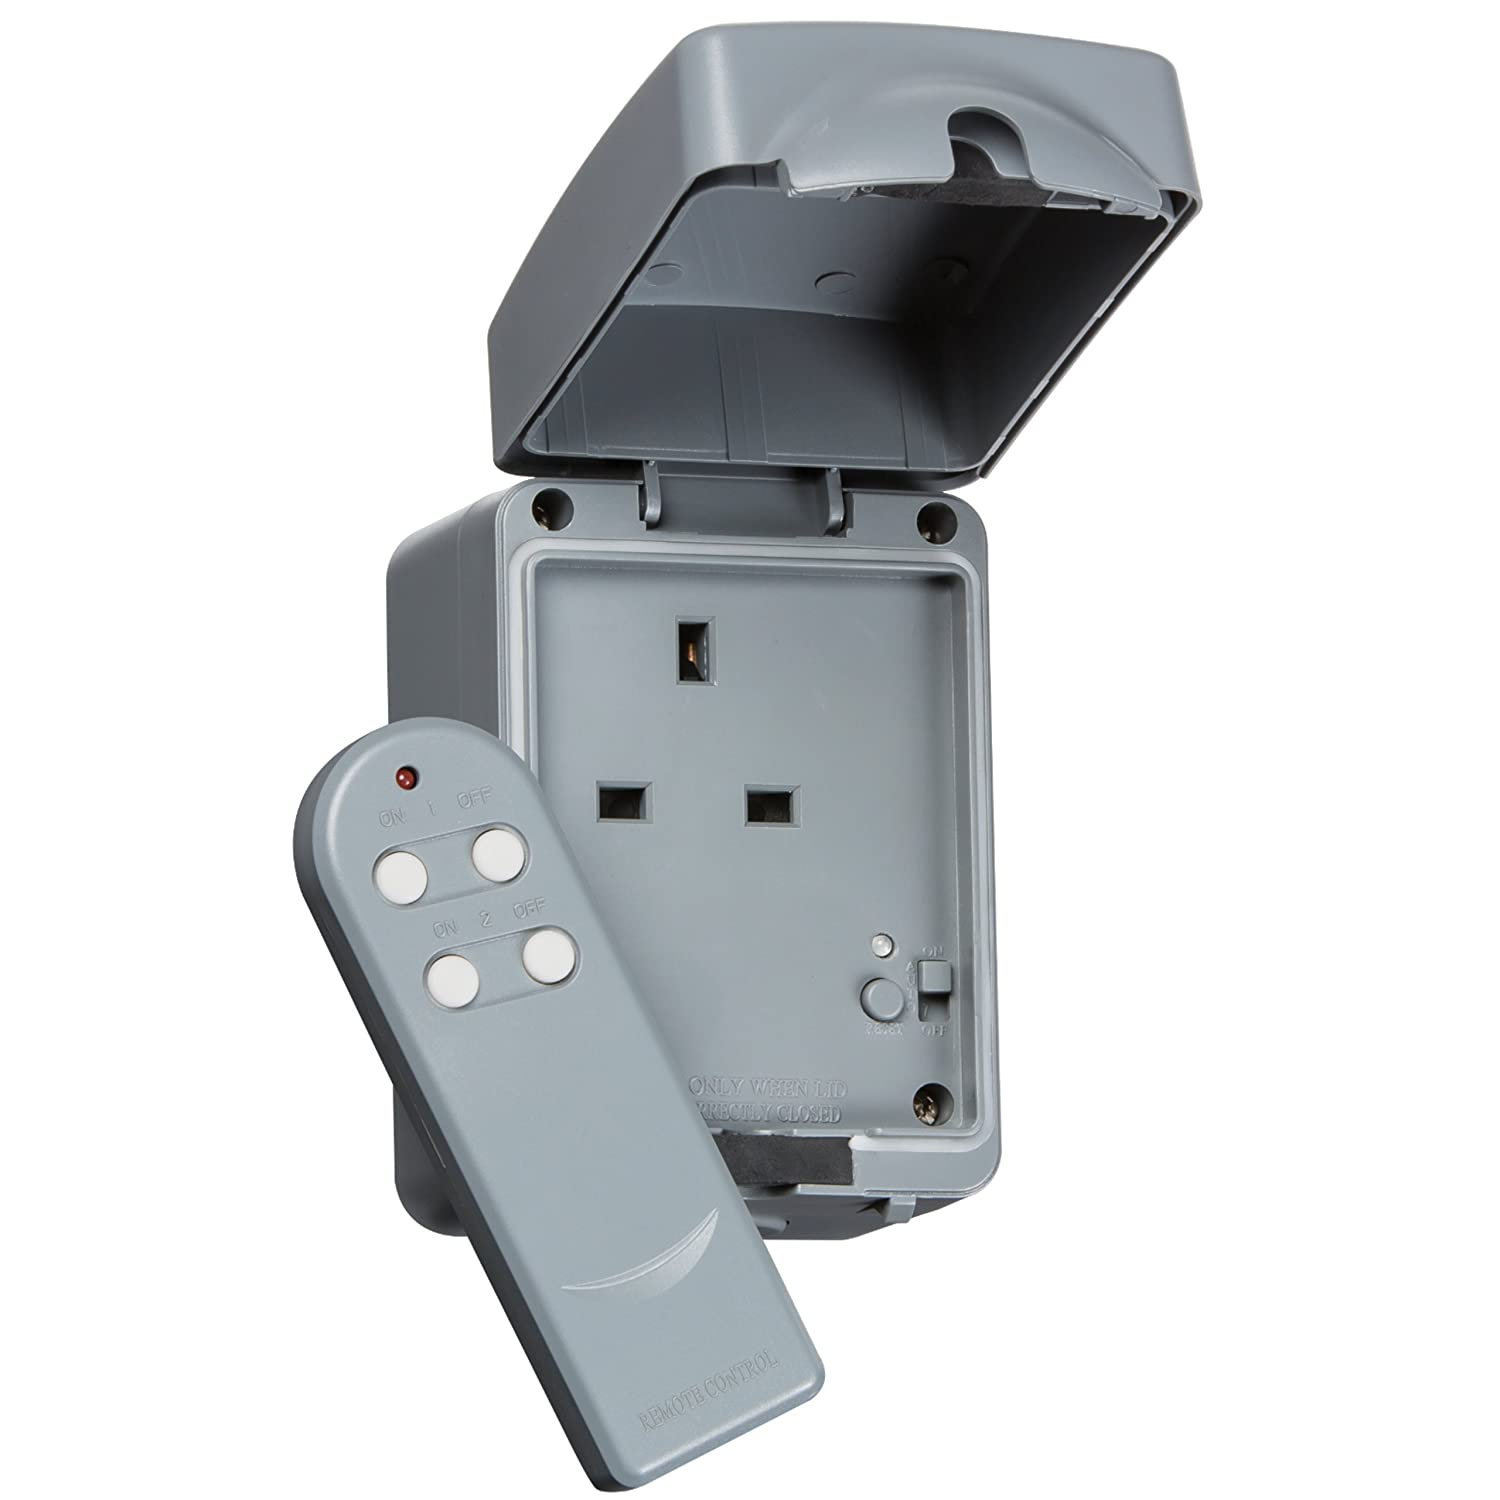 Knightsbridge IP66 13A Outdoor Remote Controlled Wireless Electric Plug Socket